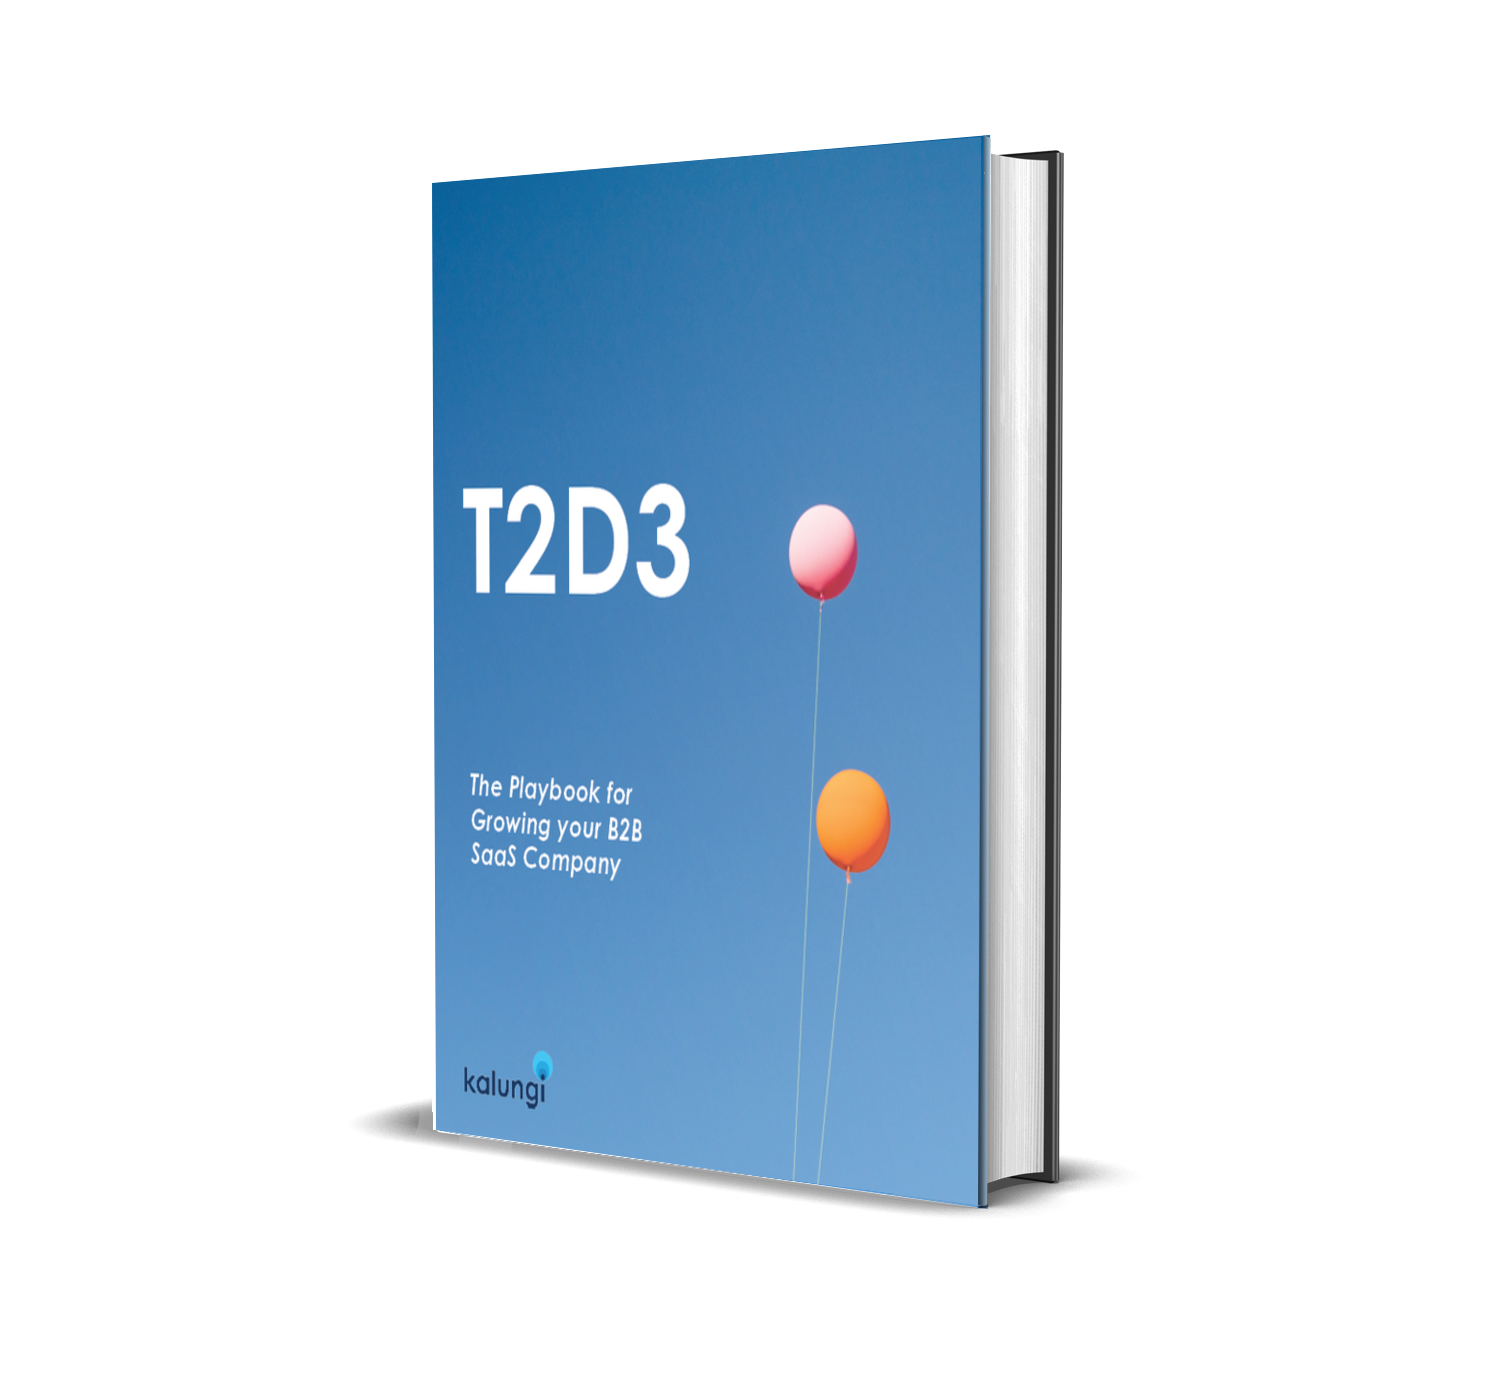 T2D3, the first book focused only on B2B SaaS Marketing.